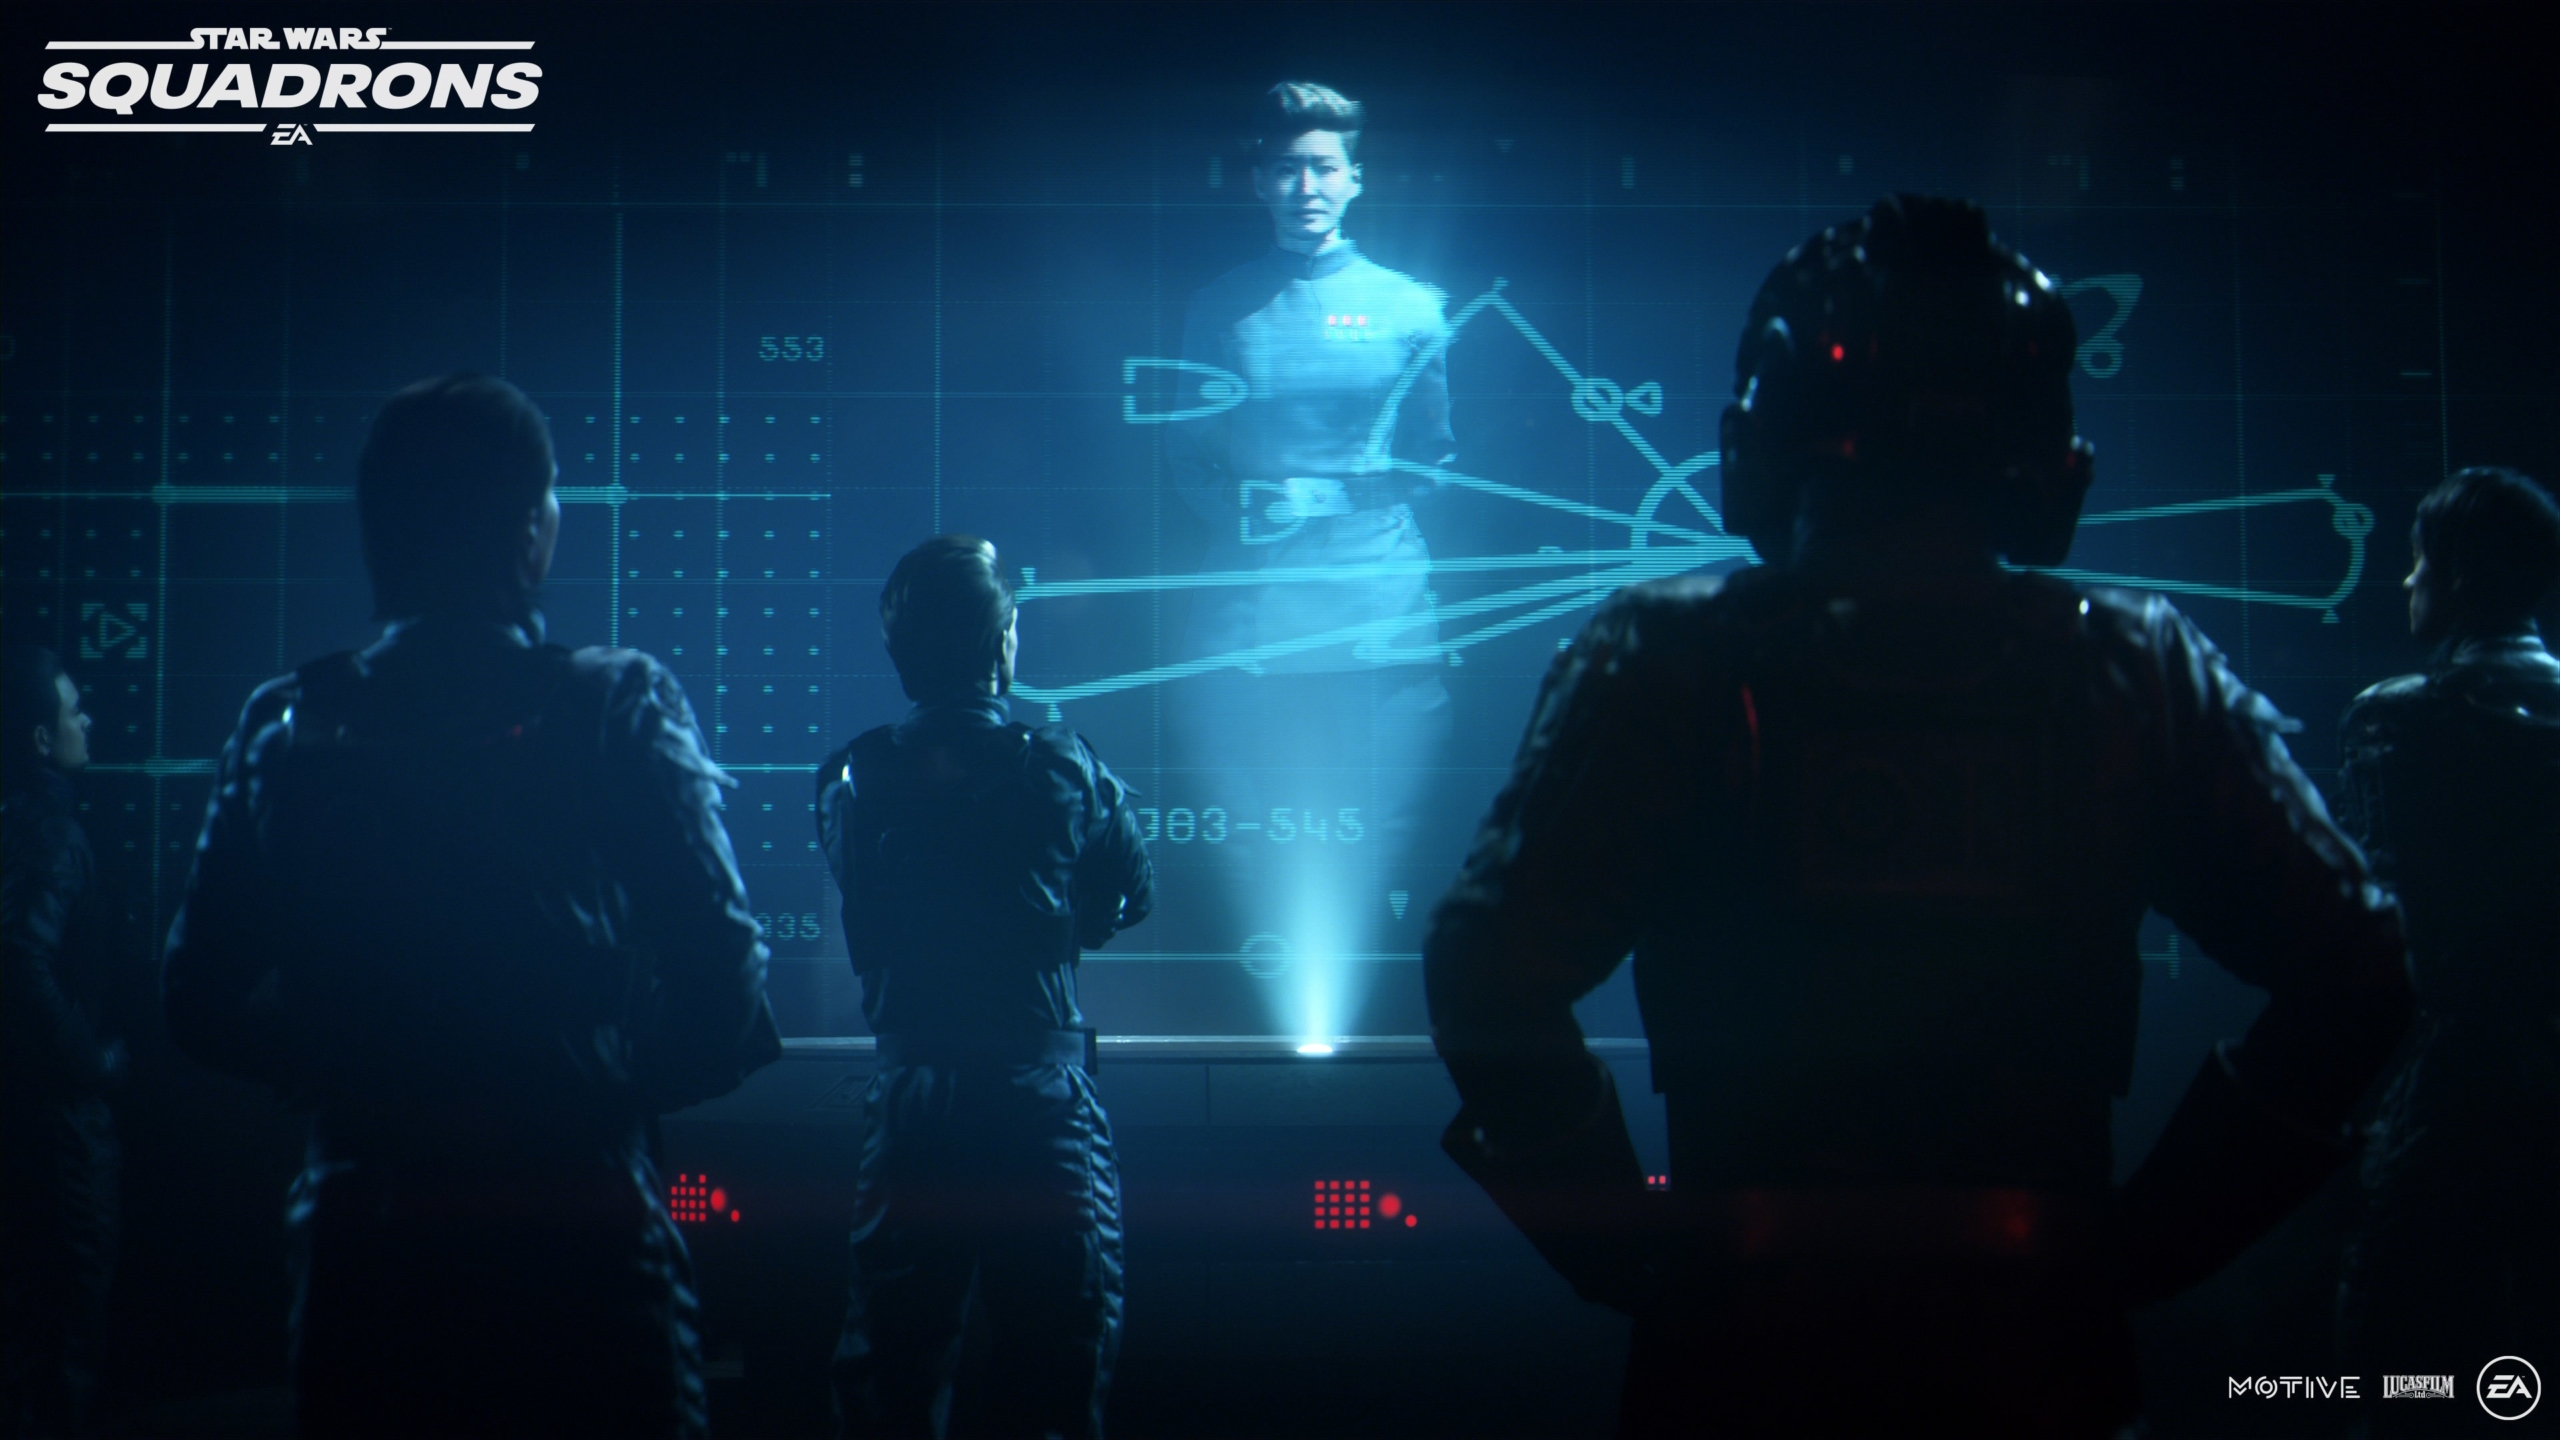 Briefing Hologram Star Wars Squadrons Background